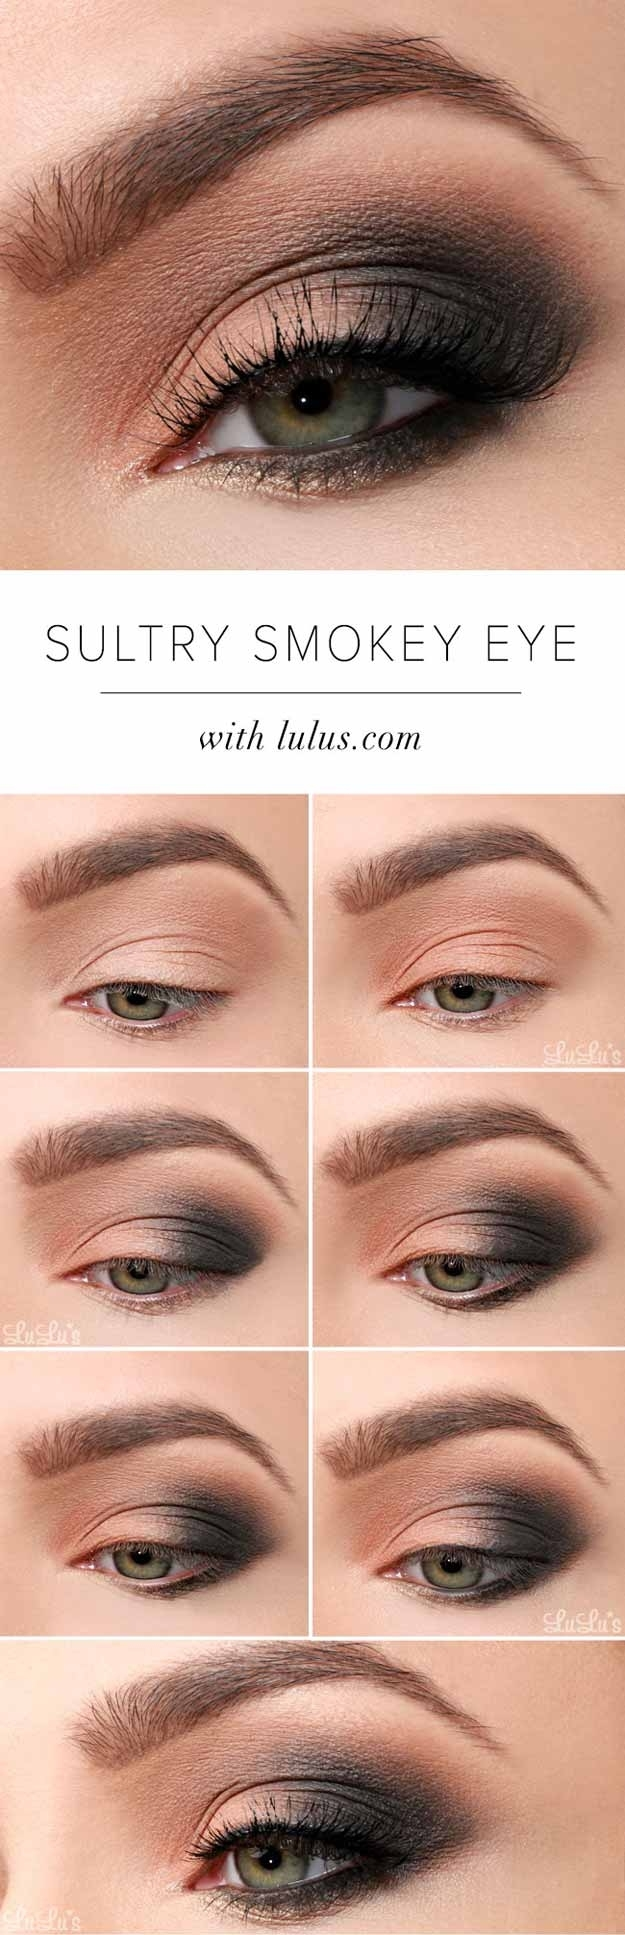 35 Wedding Makeup For Blue Eyes - The Goddess in Makeup Colors For Blue Eyes And Blonde Hair